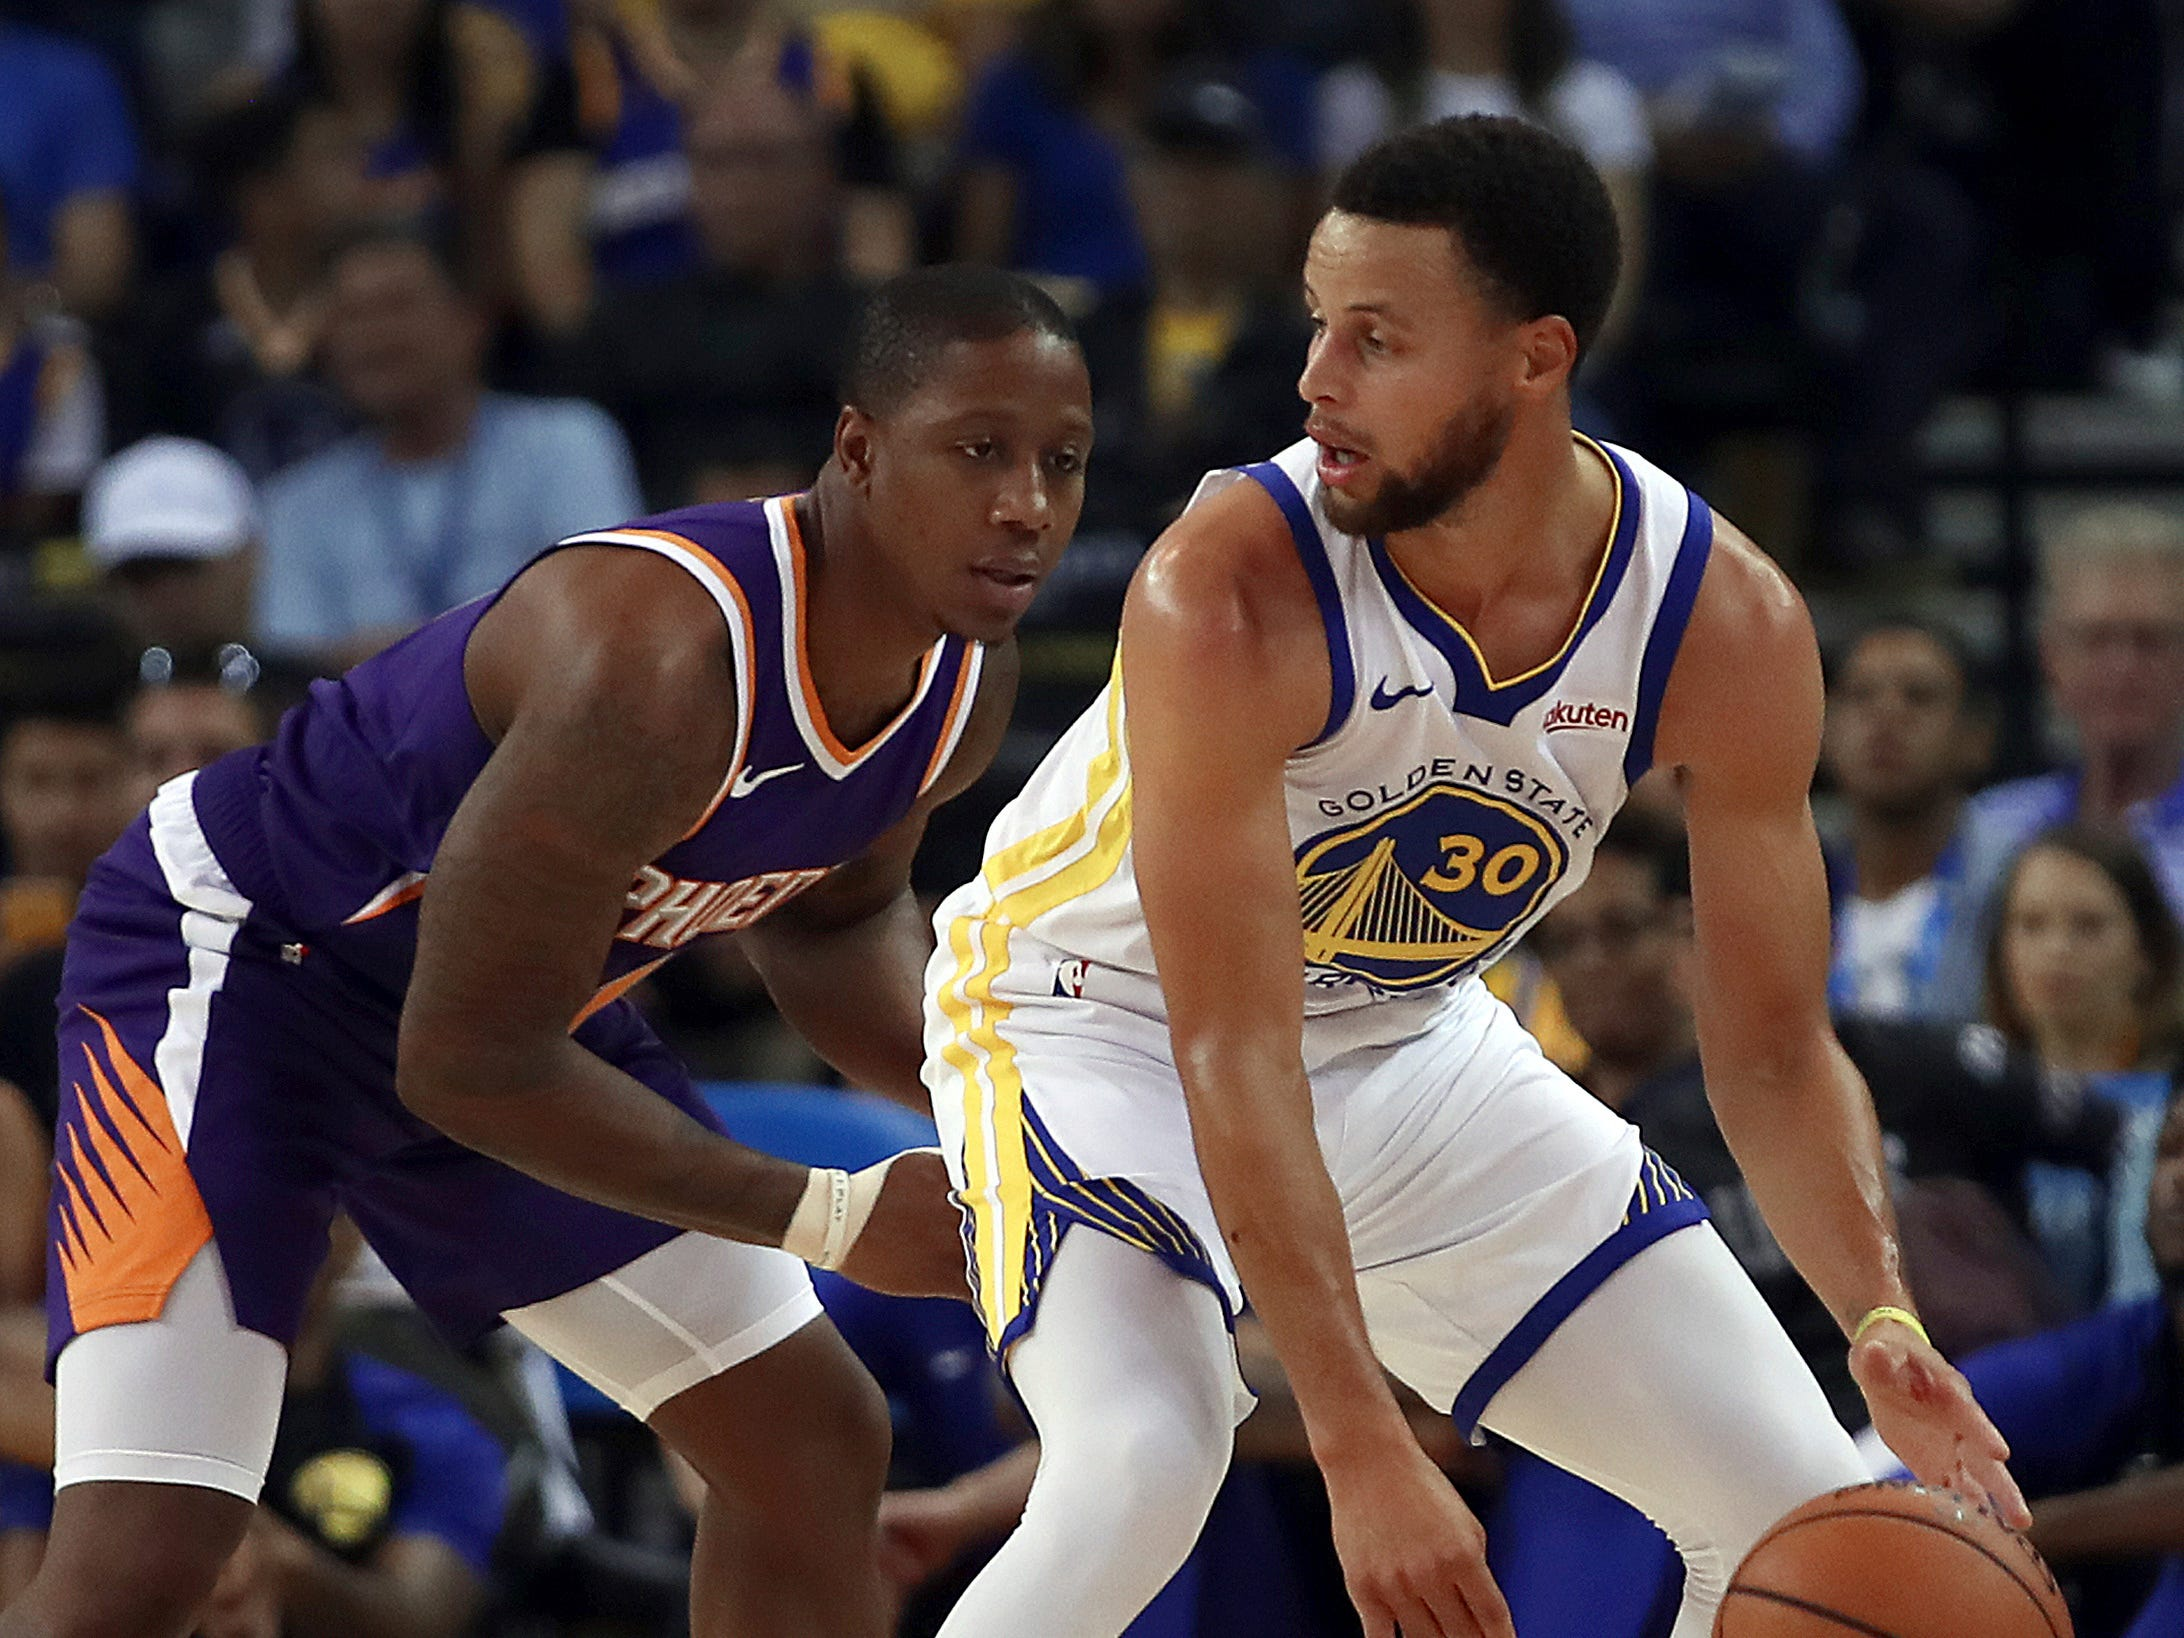 Phoenix Suns' Isaiah Canaan, left, guards Golden State Warriors' Stephen Curry (30) during the first half of a preseason NBA basketball game Monday, Oct. 8, 2018, in Oakland, Calif.